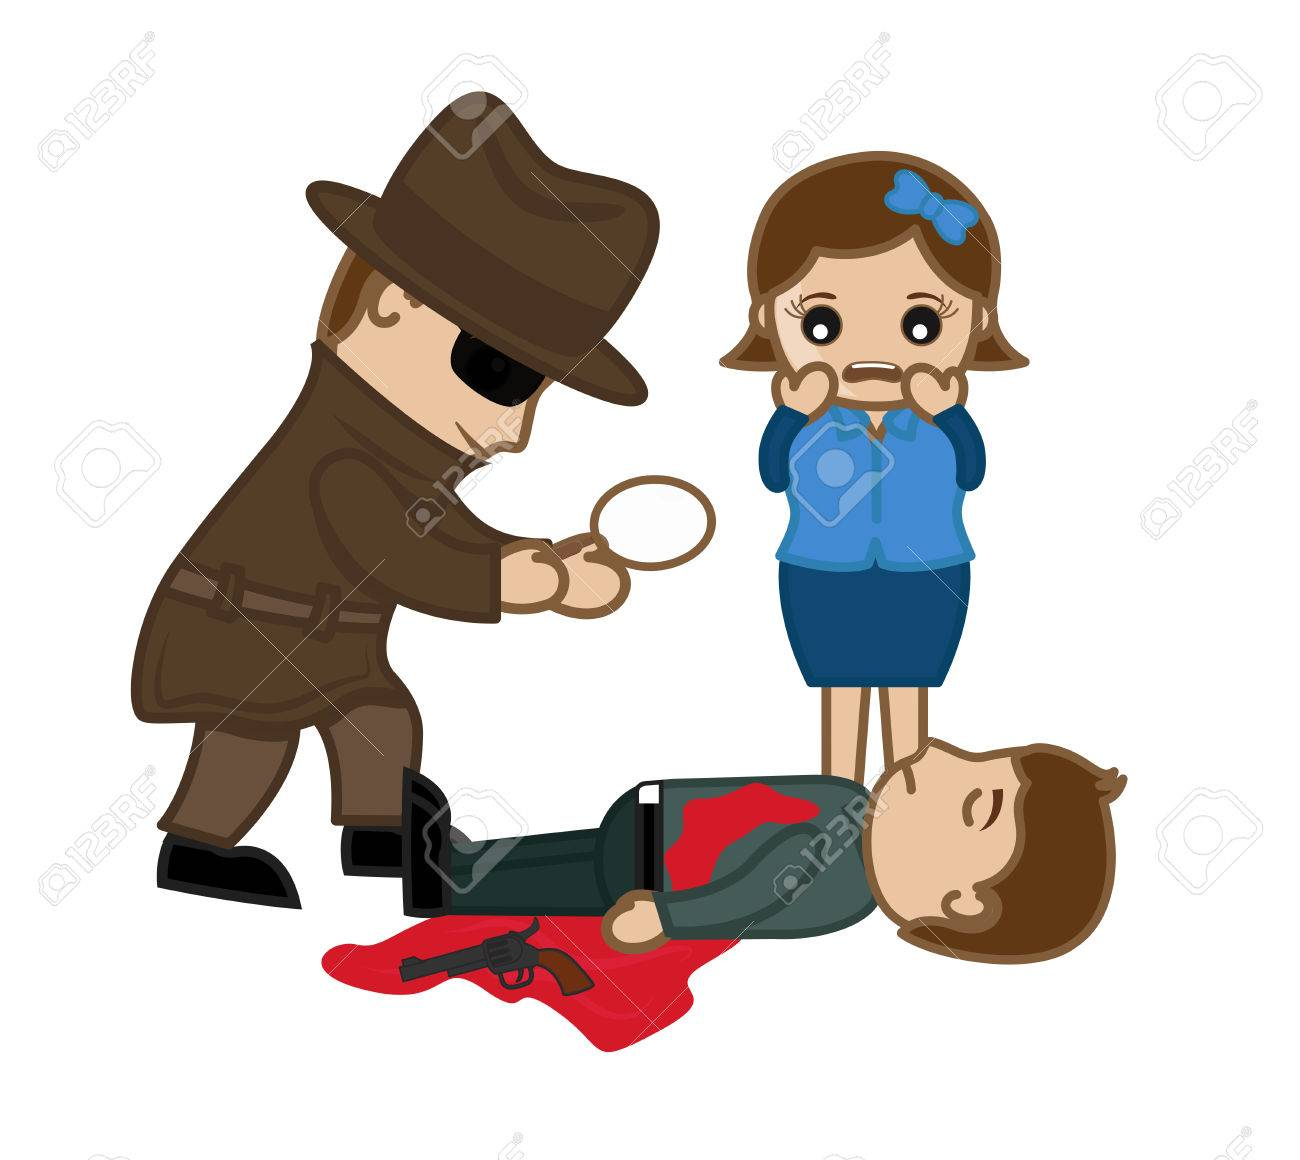 Dead body clipart 6 » Clipart Station.